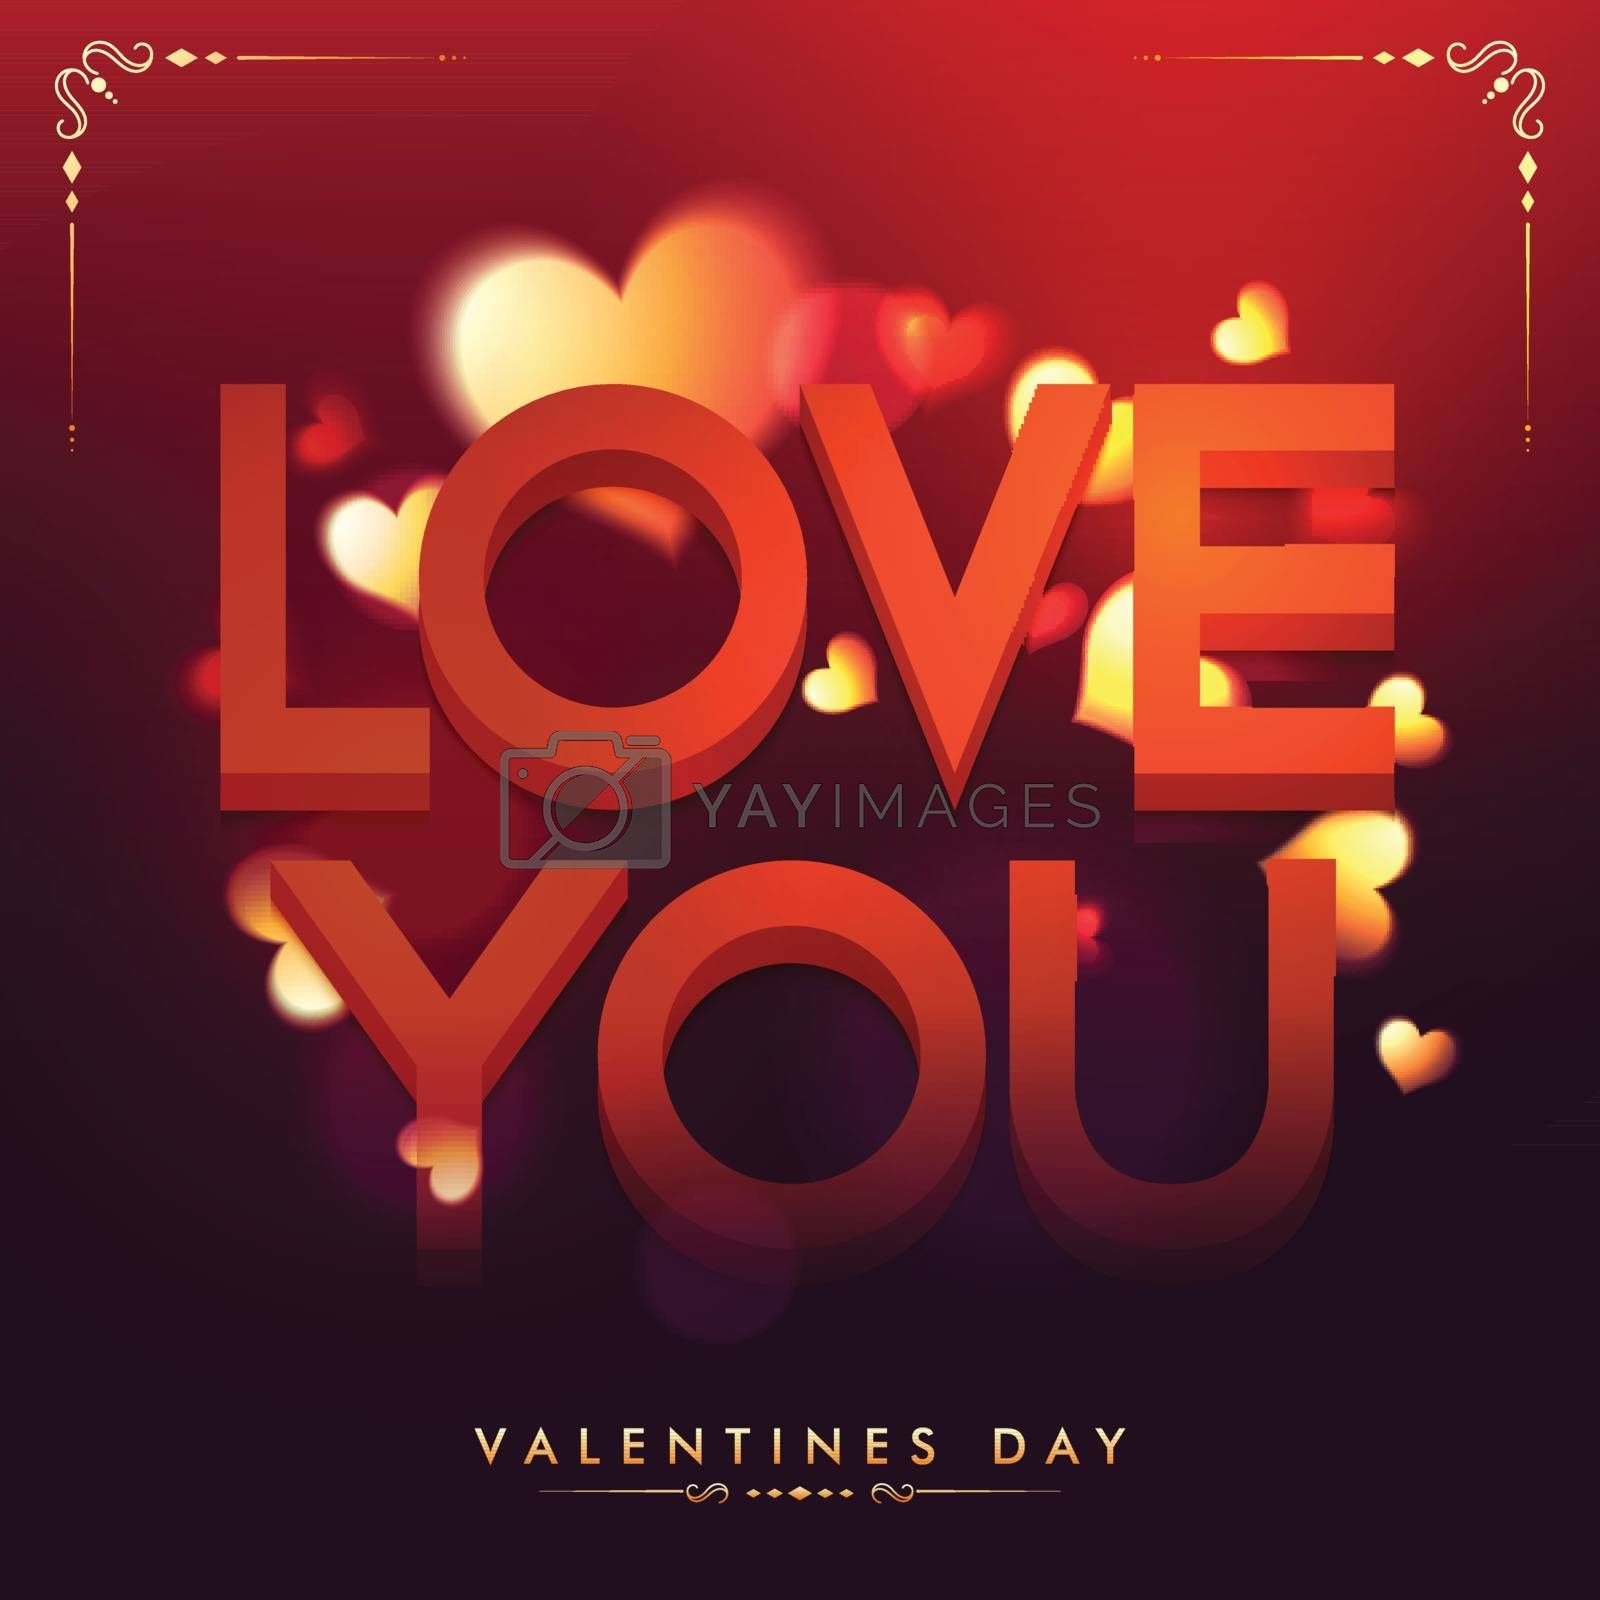 3D Text Love You on Hearts decorated glossy background, Beautiful greeting card for Happy Valentine's Day Celebration.